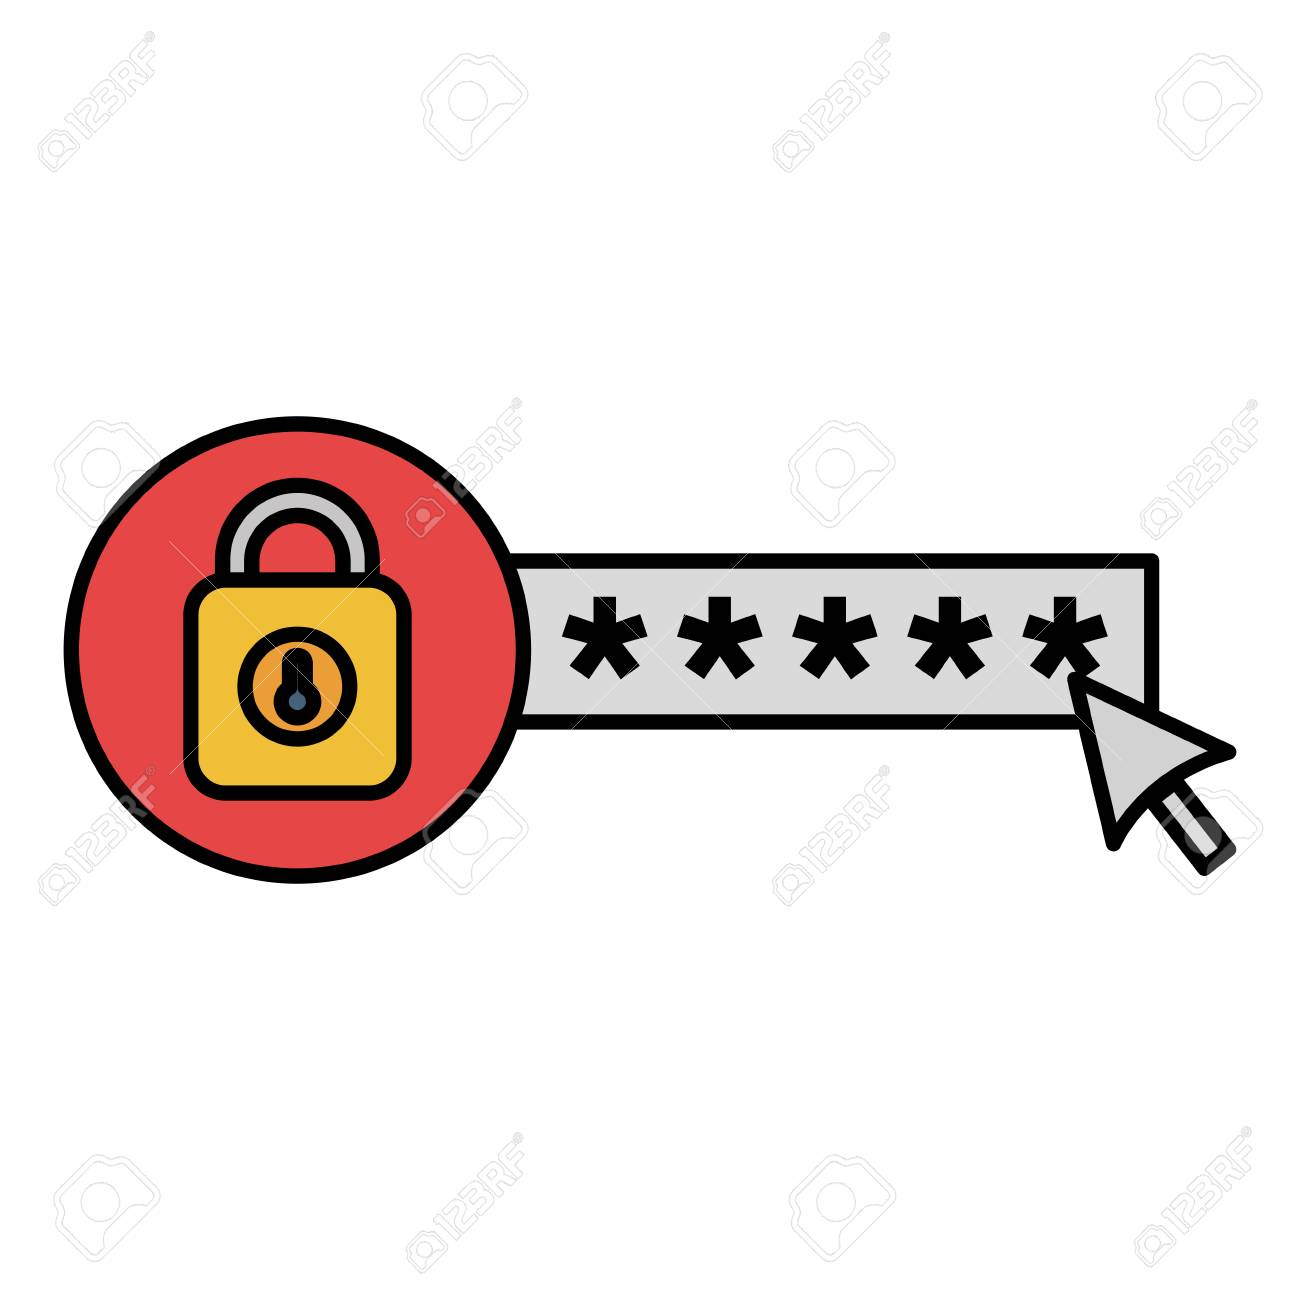 security password with padlock vector illustration design - 104105093